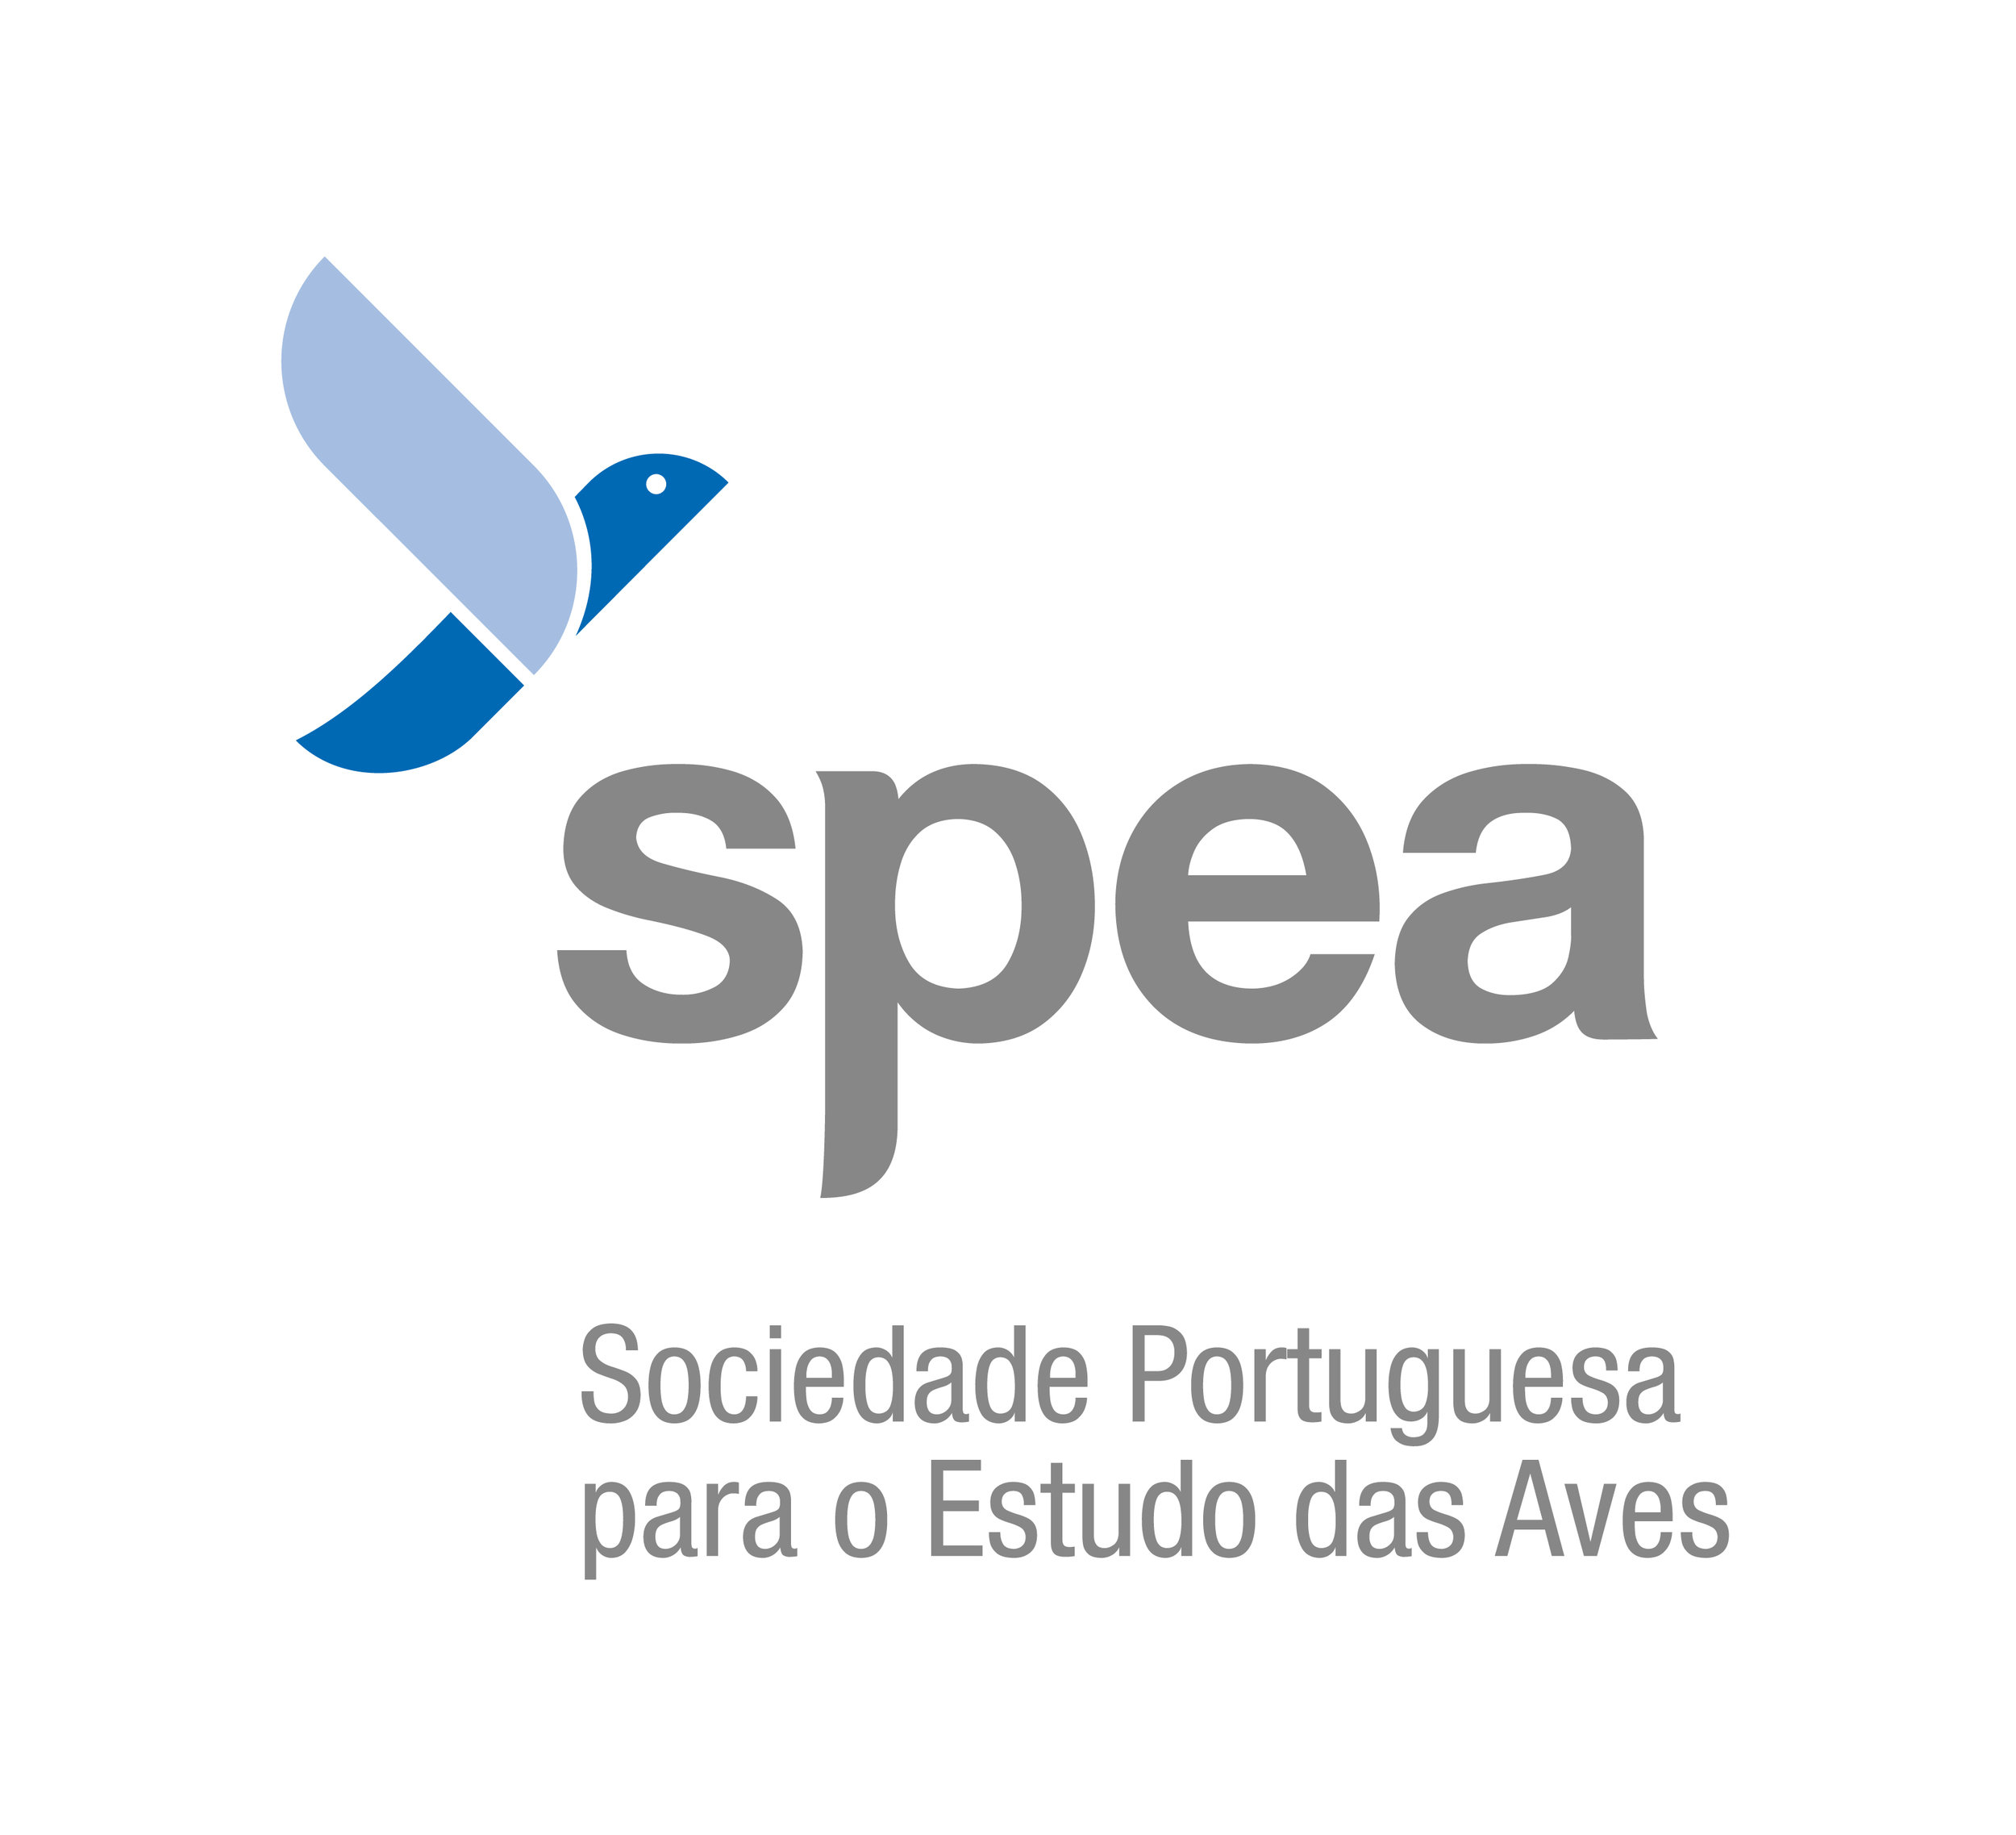 Portuguese Society for the Study of Birds (SPEA)